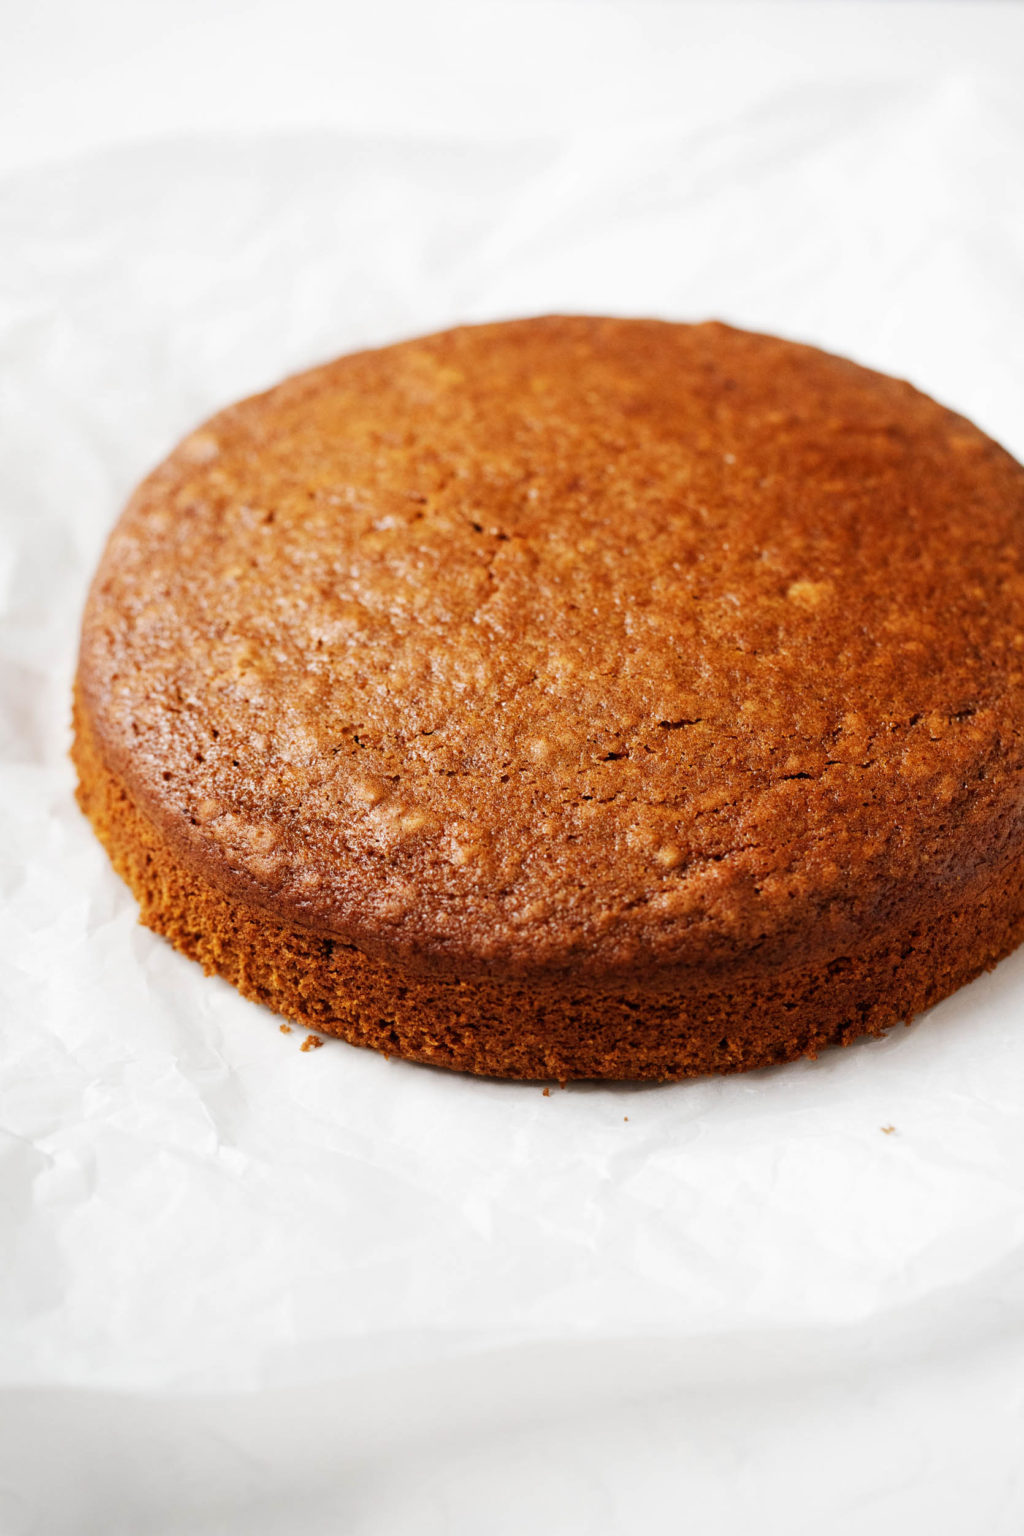 A golden brown, neat, simple vegan cake for the holidays.